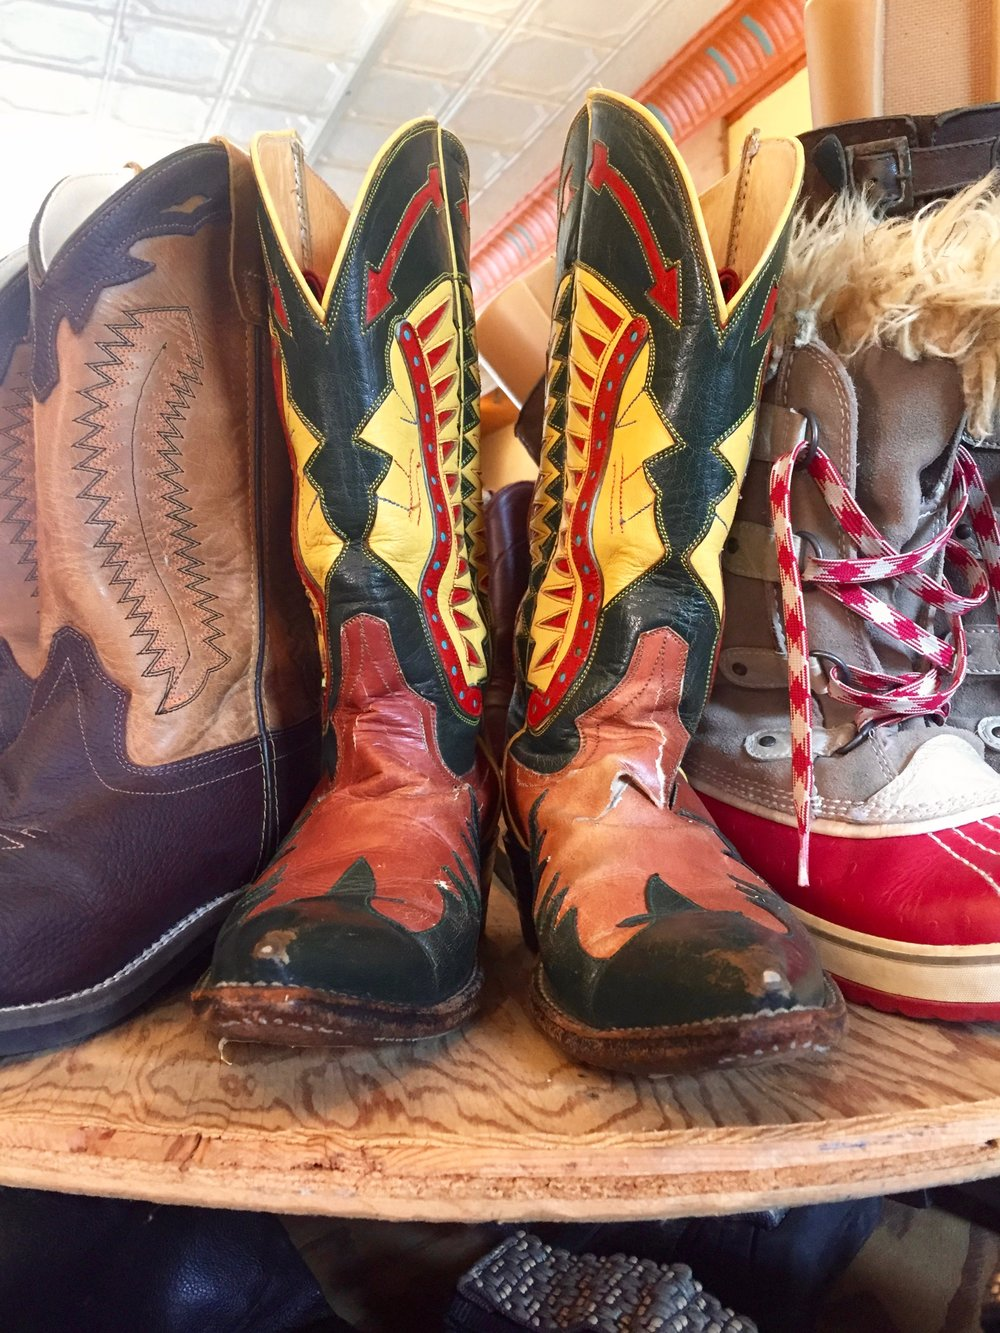 Vintage cowboy boots at The Big Cheese in Rosendale, NY